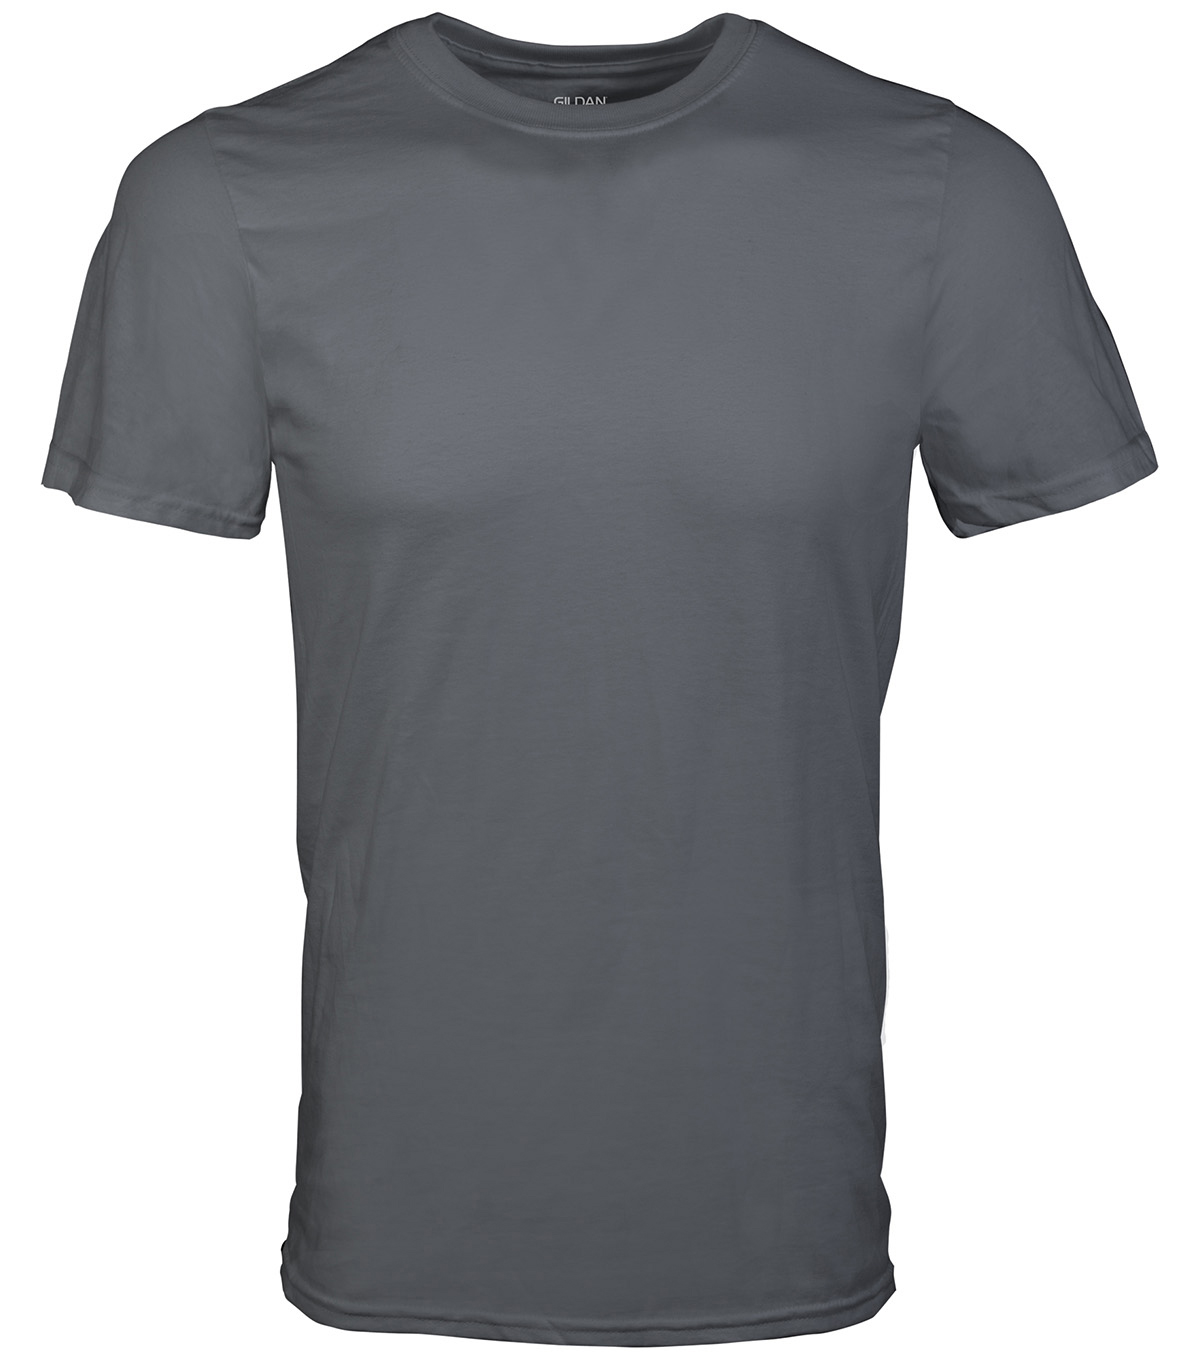 Gildan Adult Performance T-Shirt Small